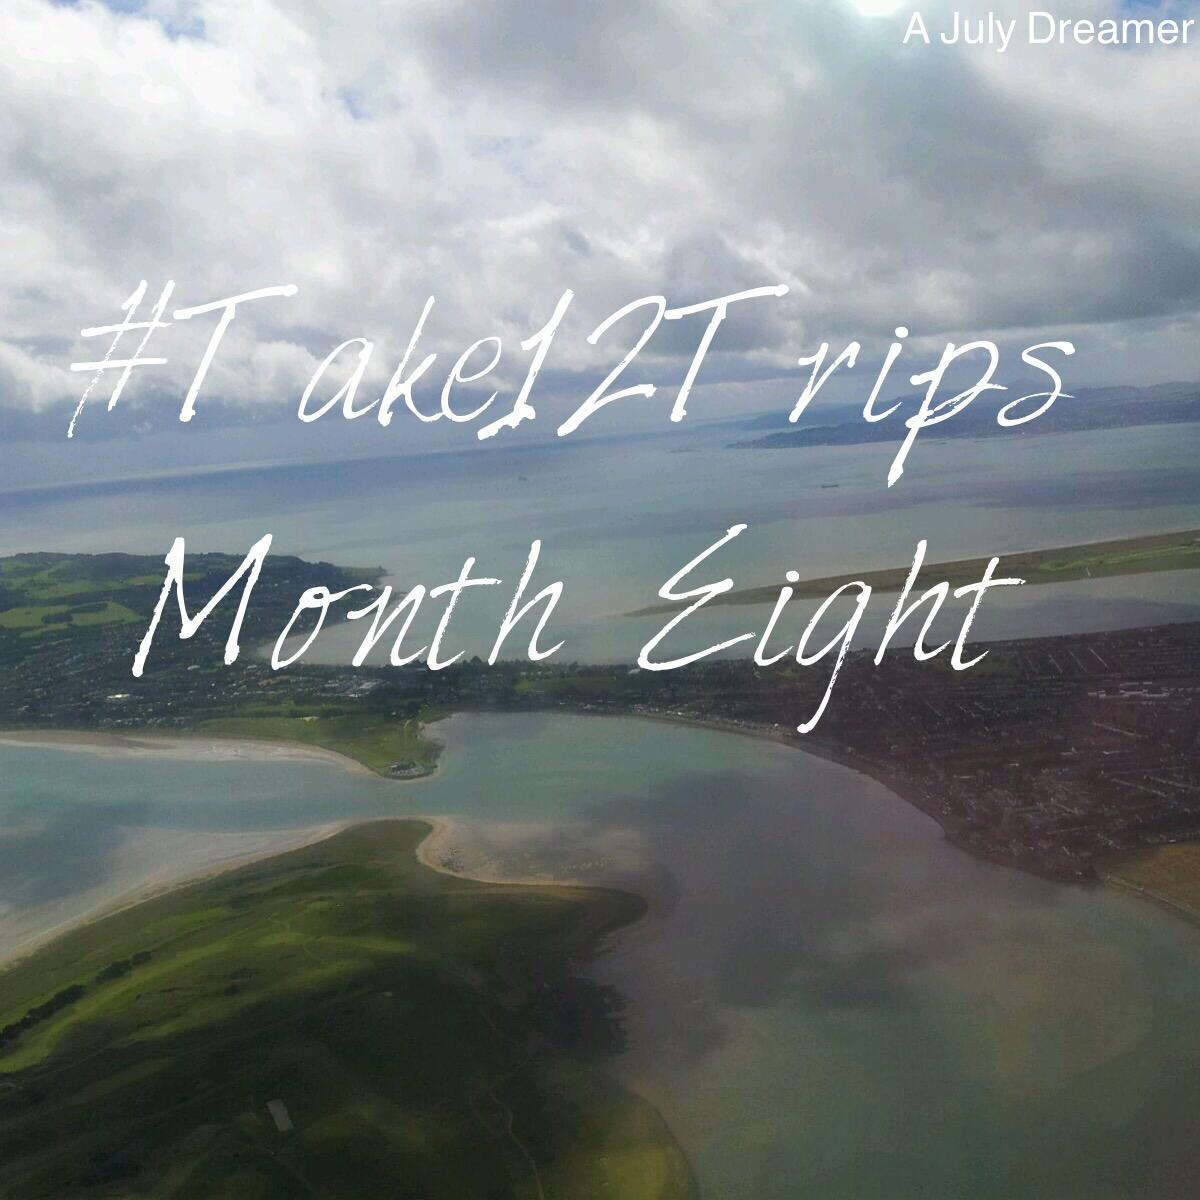 take12trips month eight